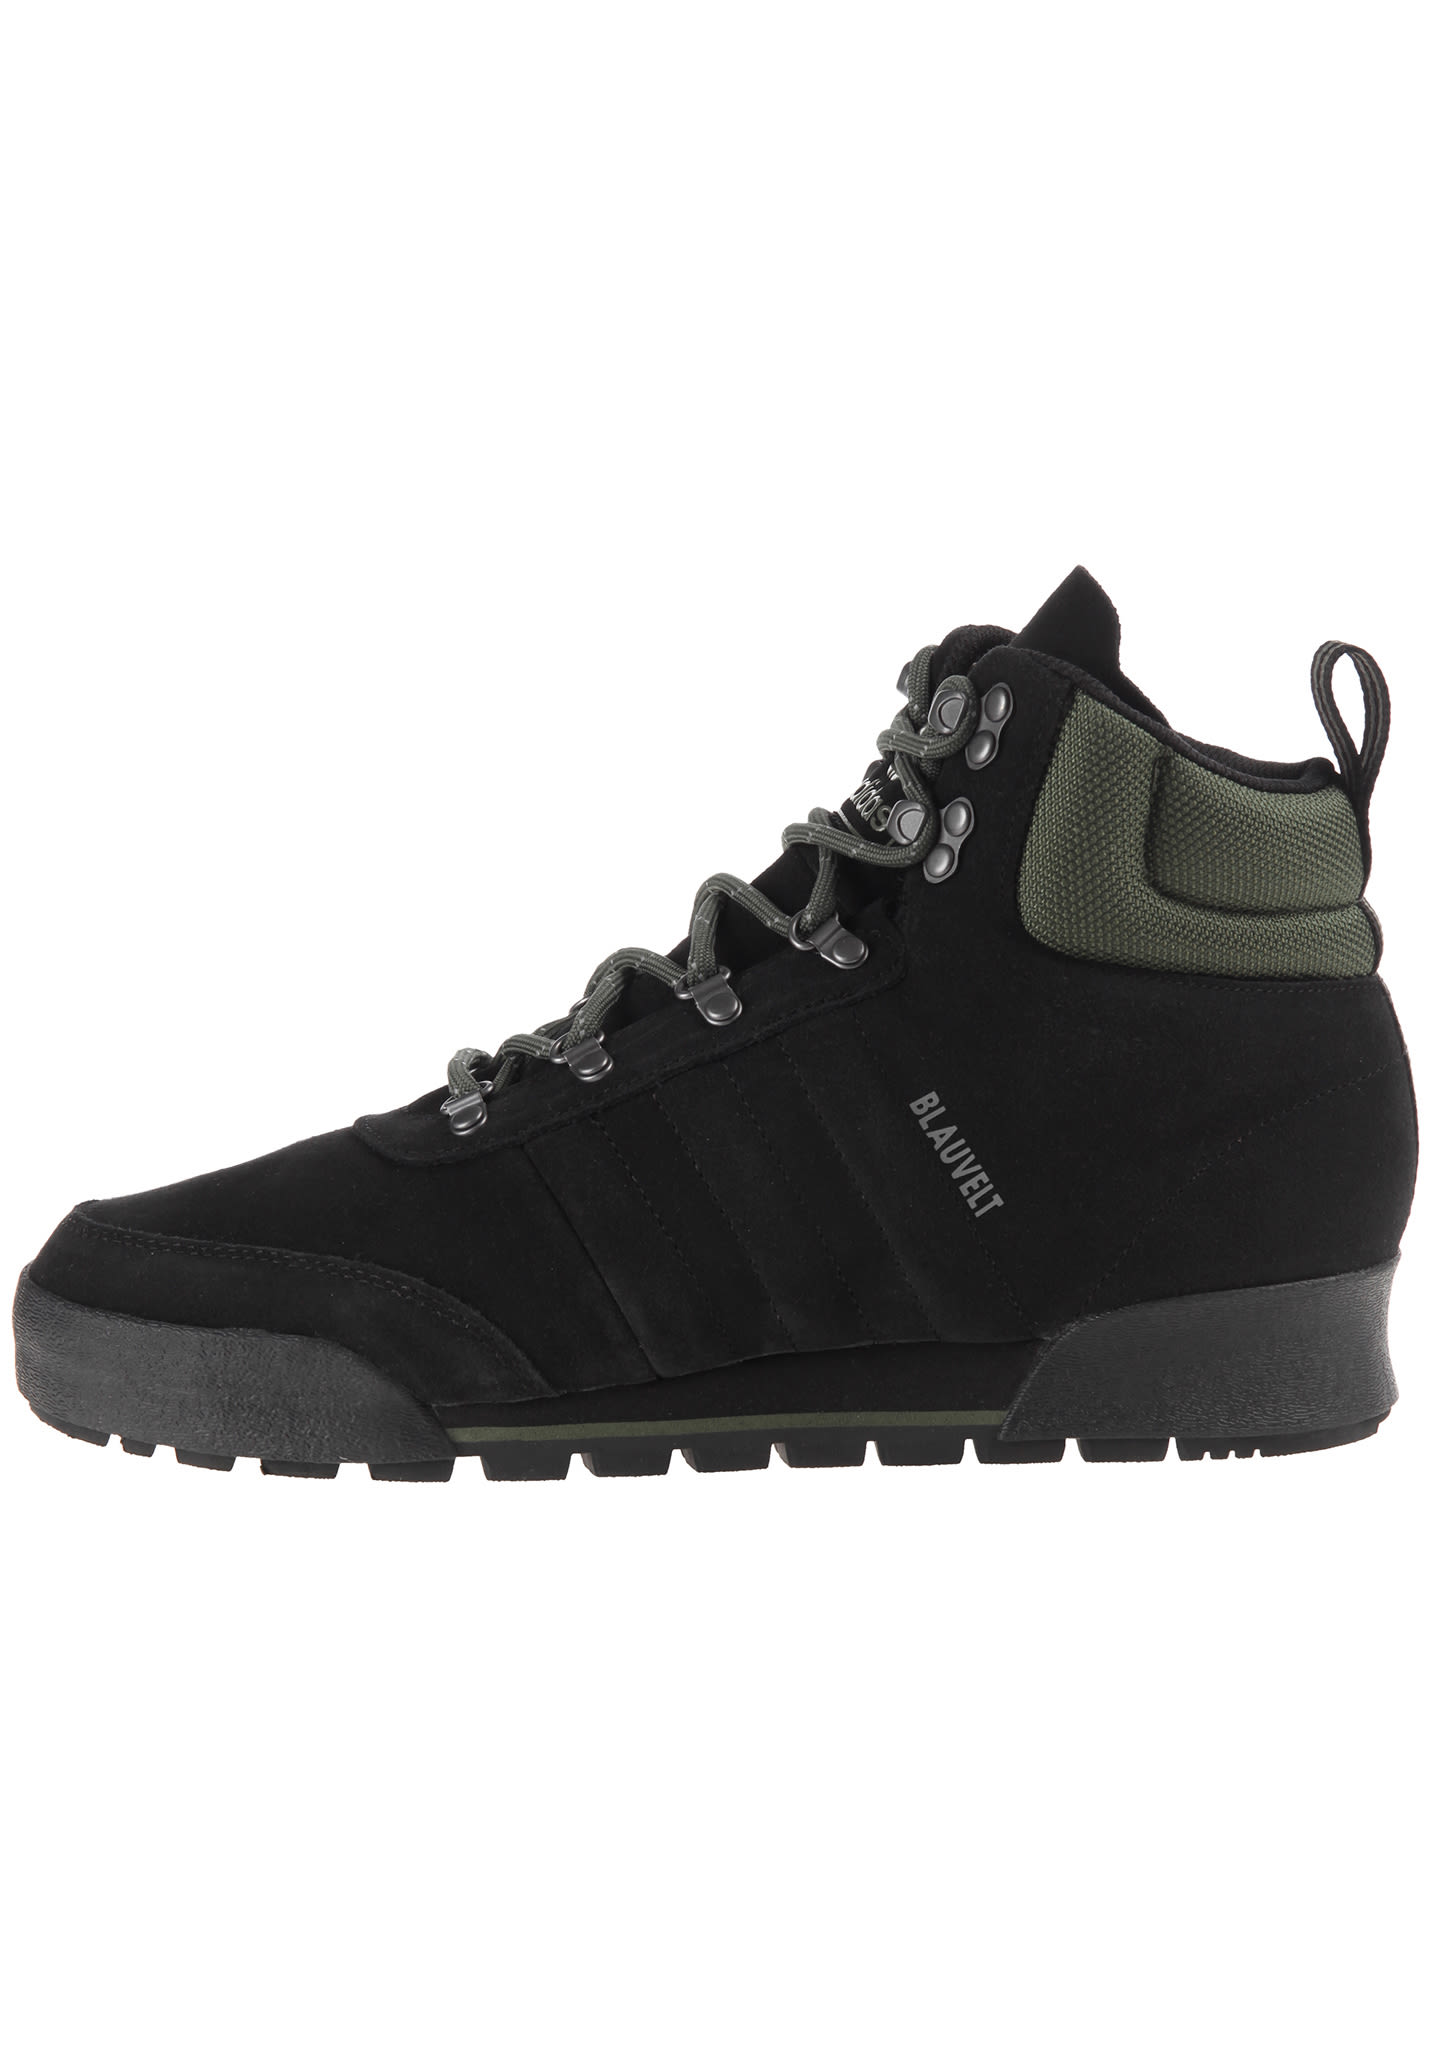 new concept 4c5e6 99808 Adidas Skateboarding Jake Boot 2.0 - Boots for Men - Black